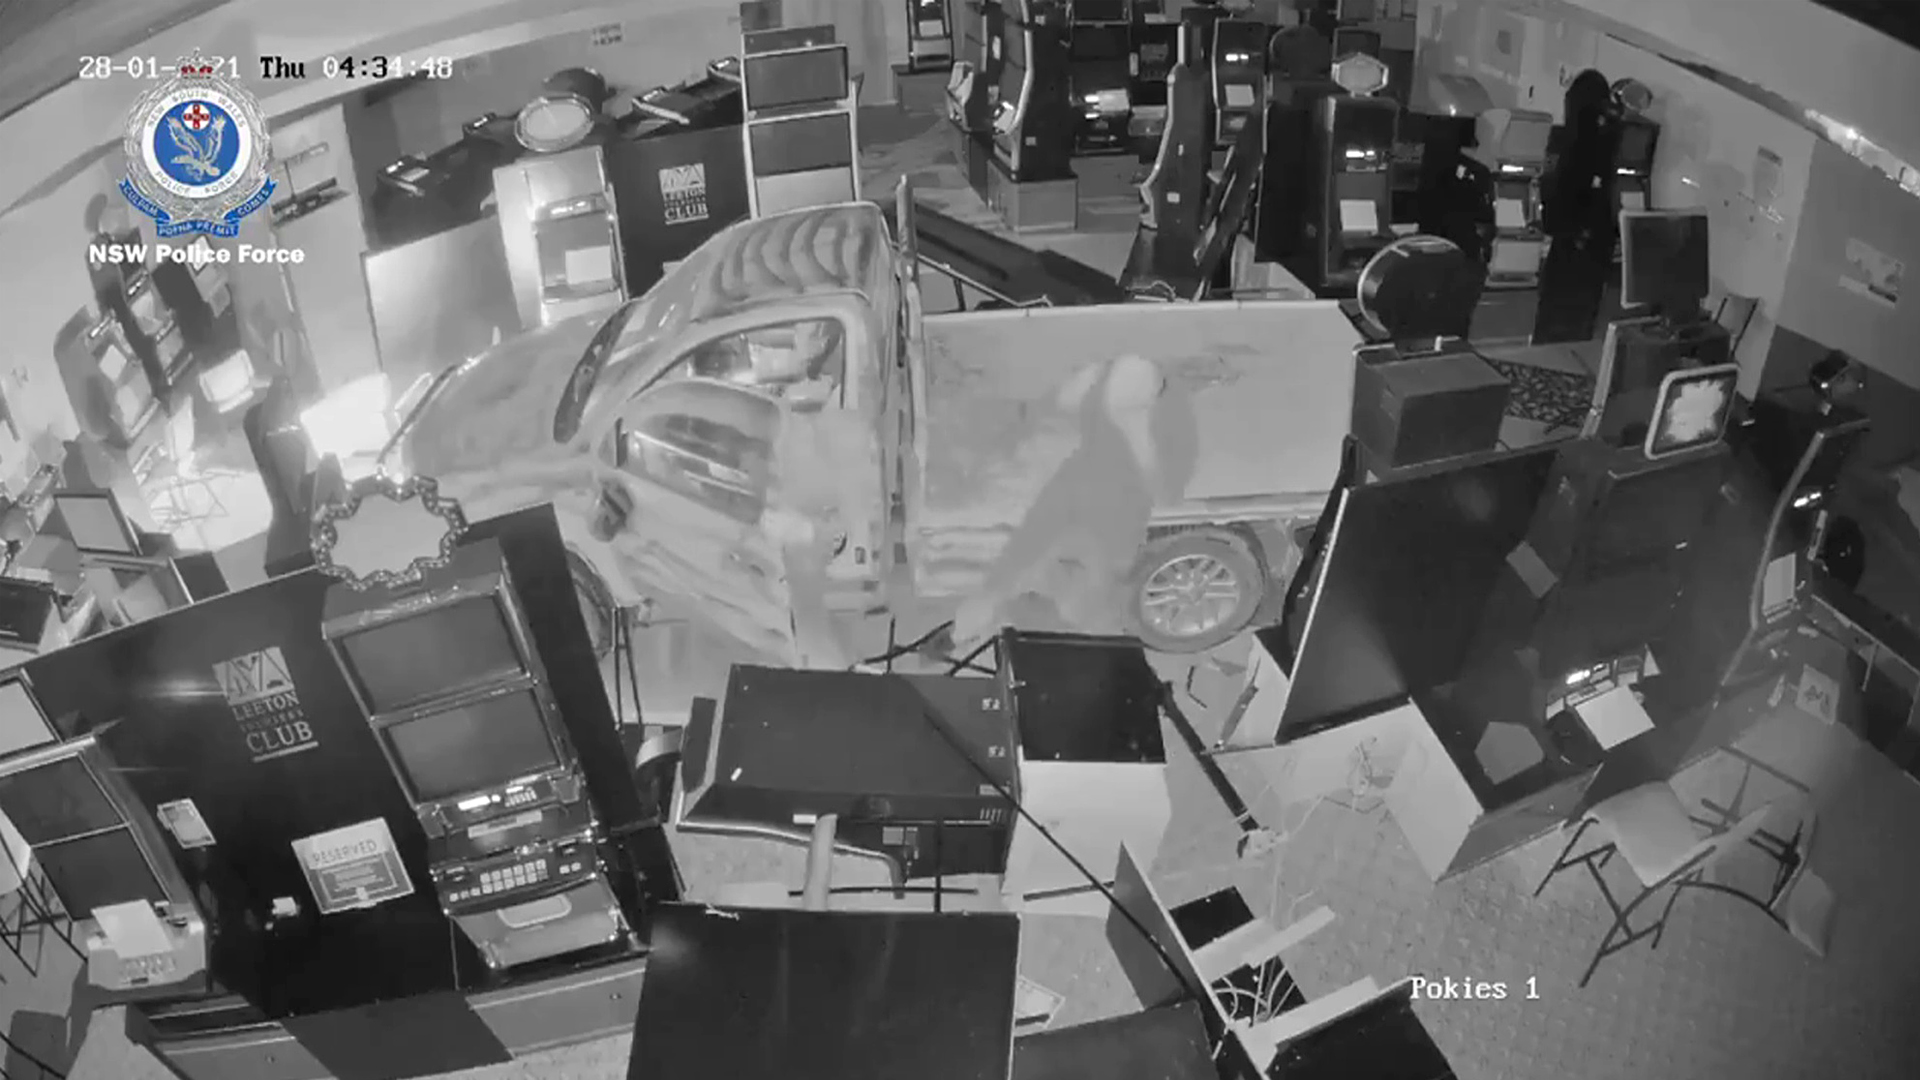 VIDEO: Ram Raiders Flee With Slot Machines After Crashing Into Leeton Soldiers Club, Australia